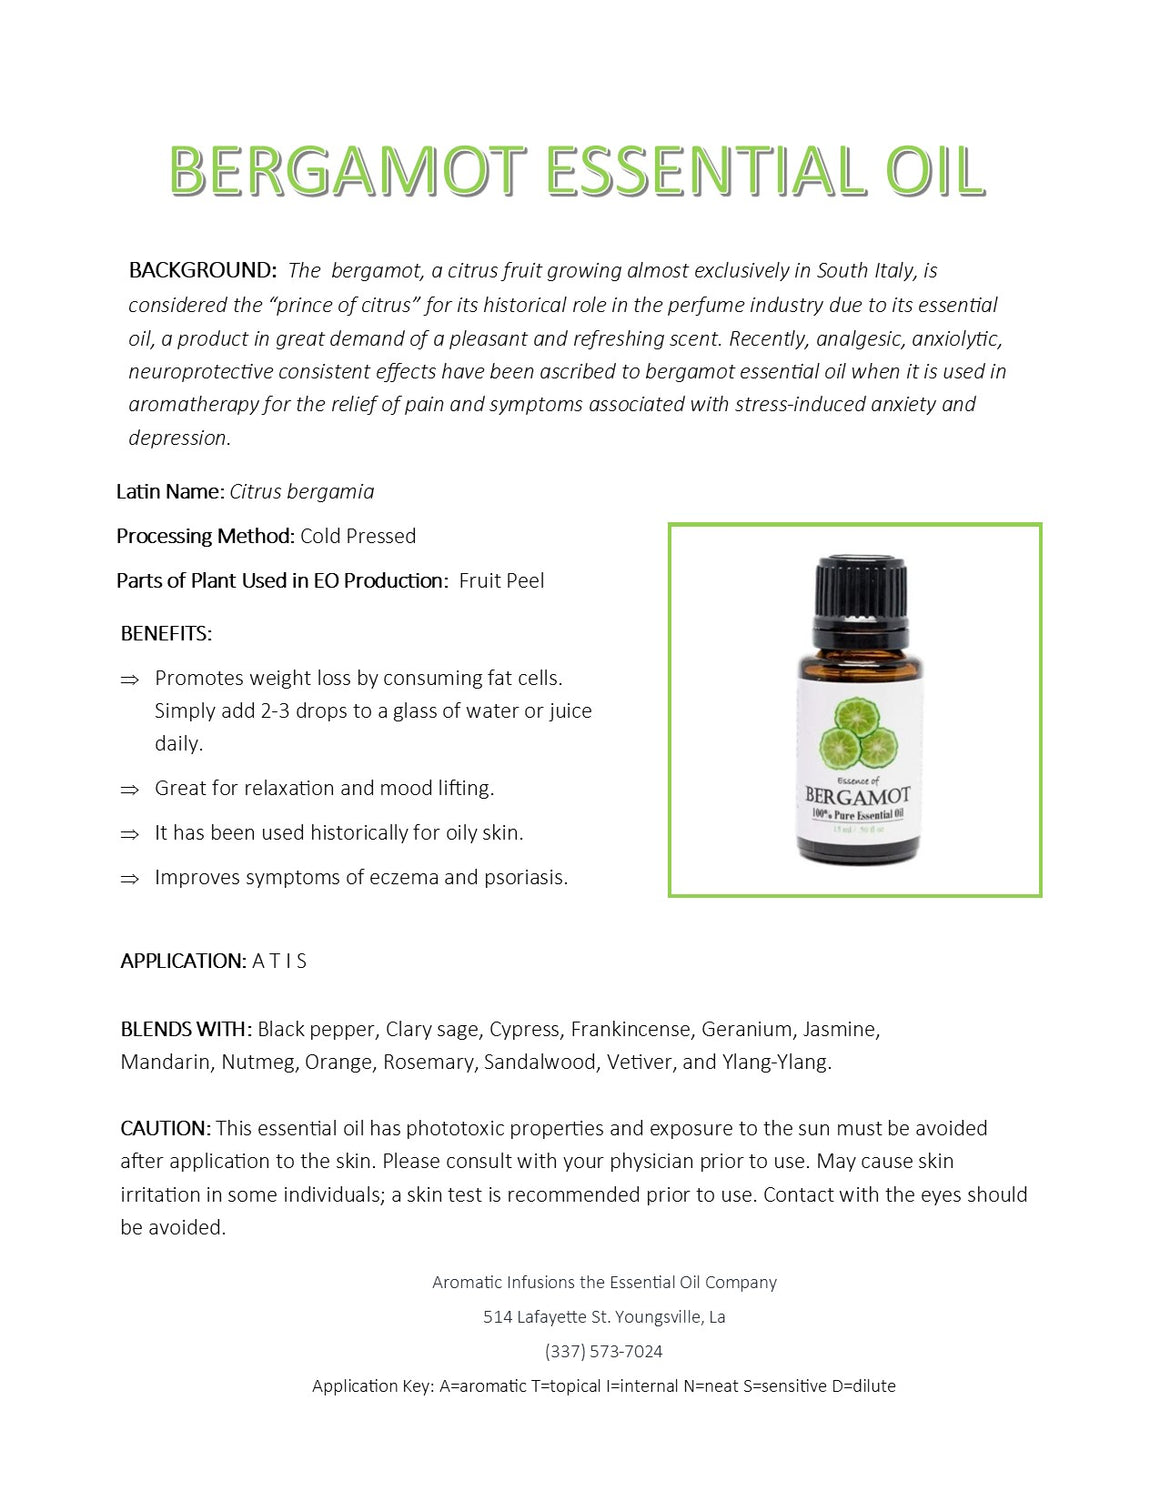 Bergamot Essential Oil 15ml - Aromatic Infusions